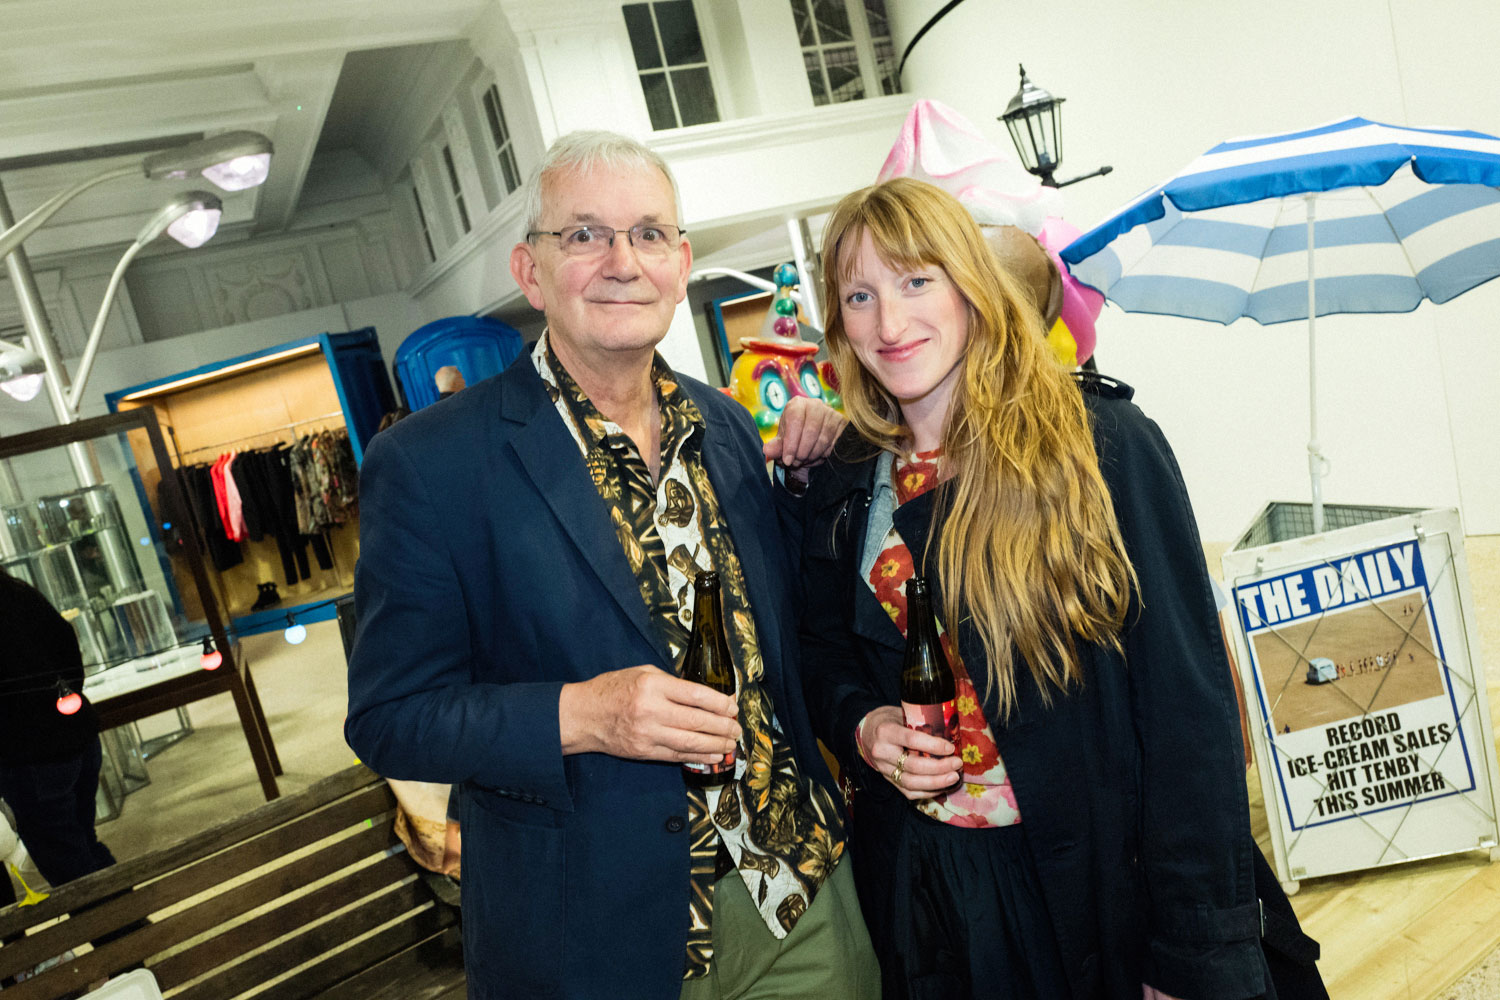 Martin Parr with the fashion designer Molly Goddard at Dover Street Market in London